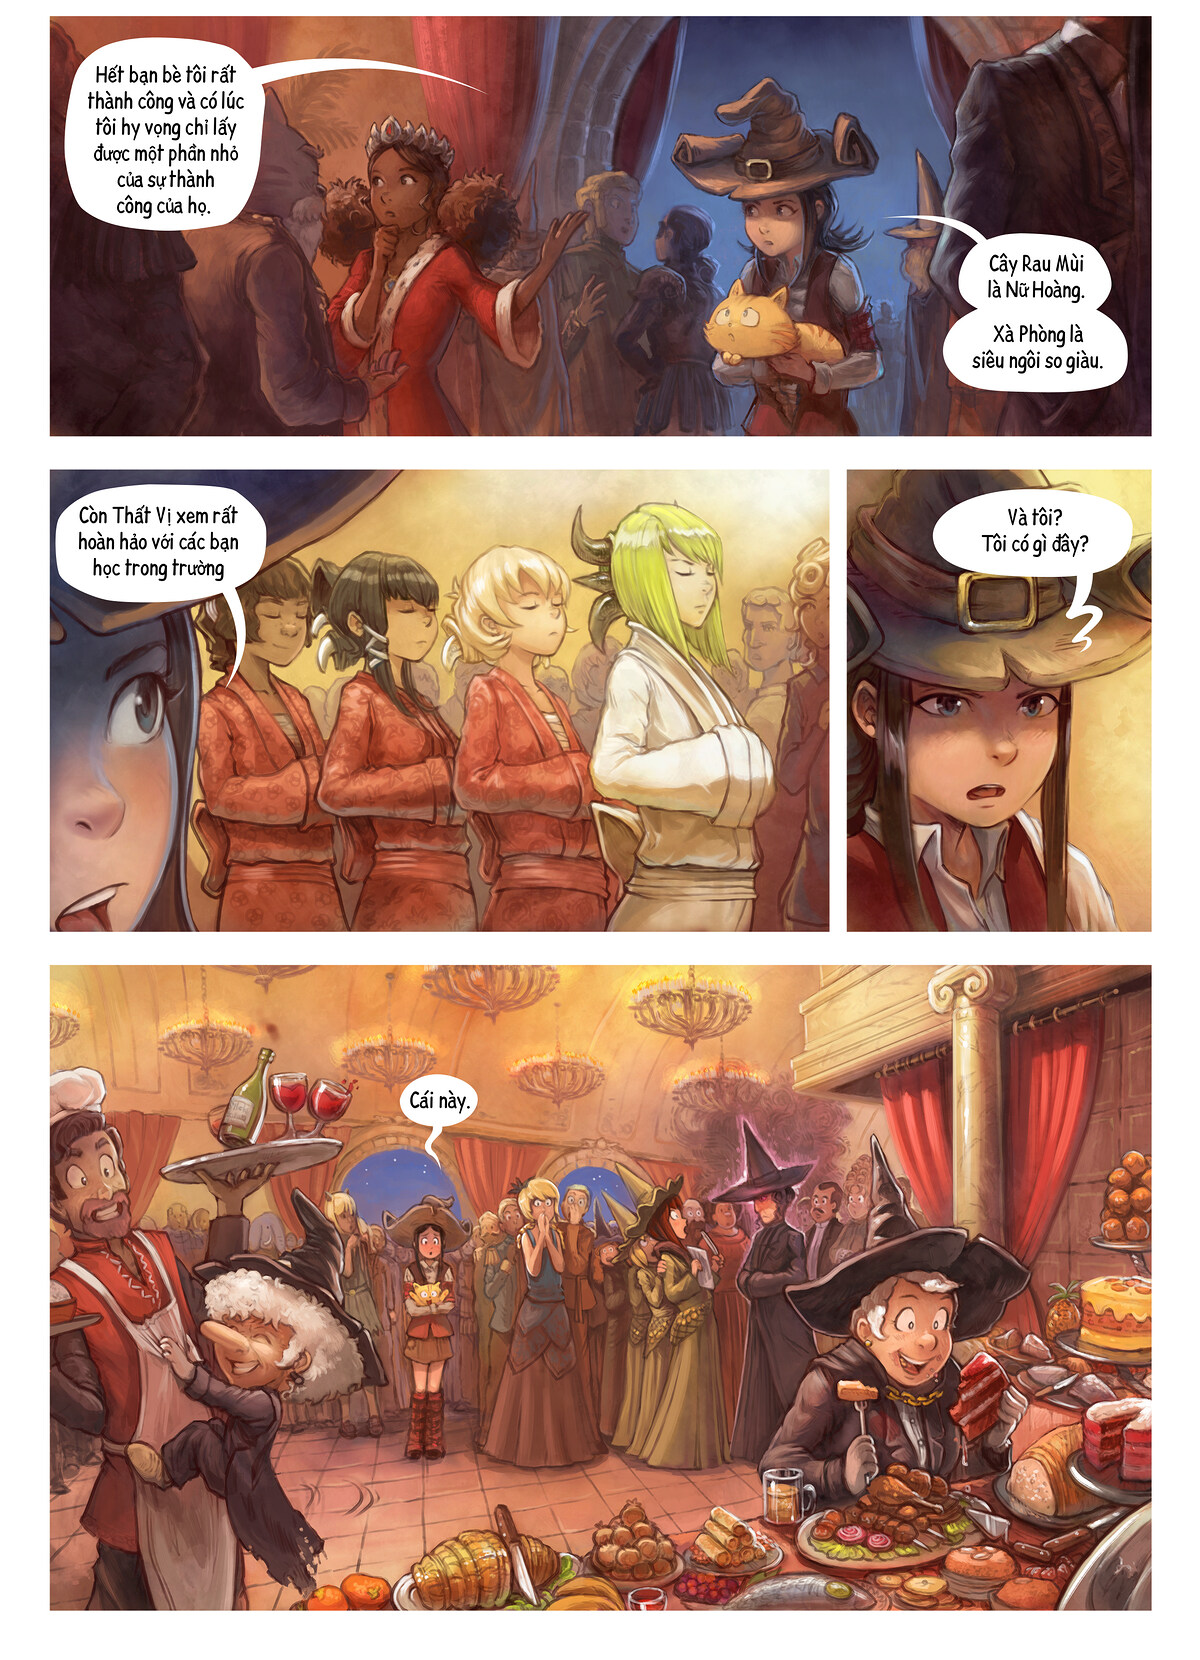 A webcomic page of Pepper&Carrot, Tập 28 [vi], trang 5